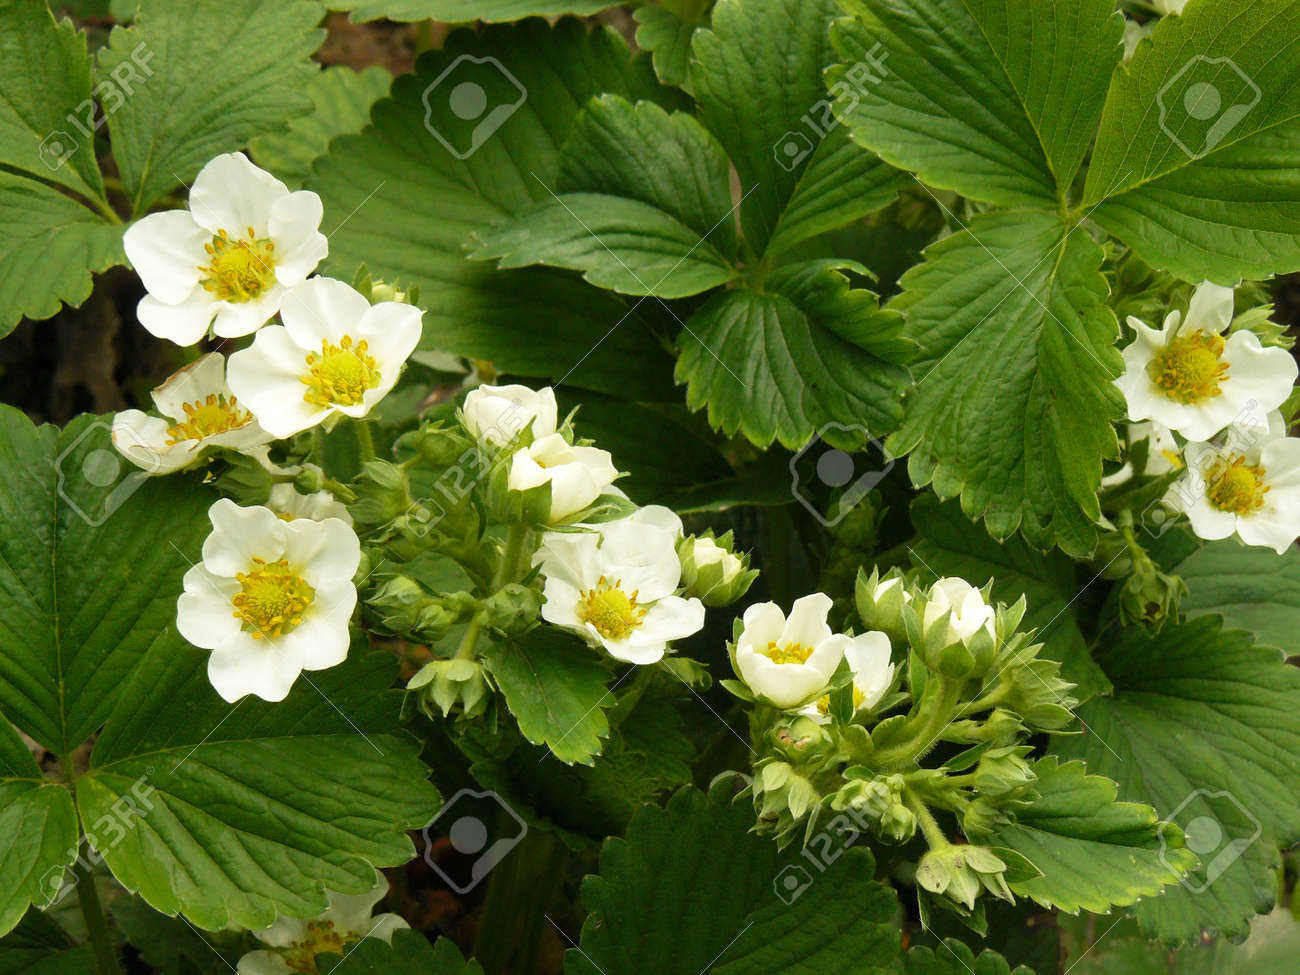 Strawberry Plants Flowering In The Garden Stock Photo, Picture And ...